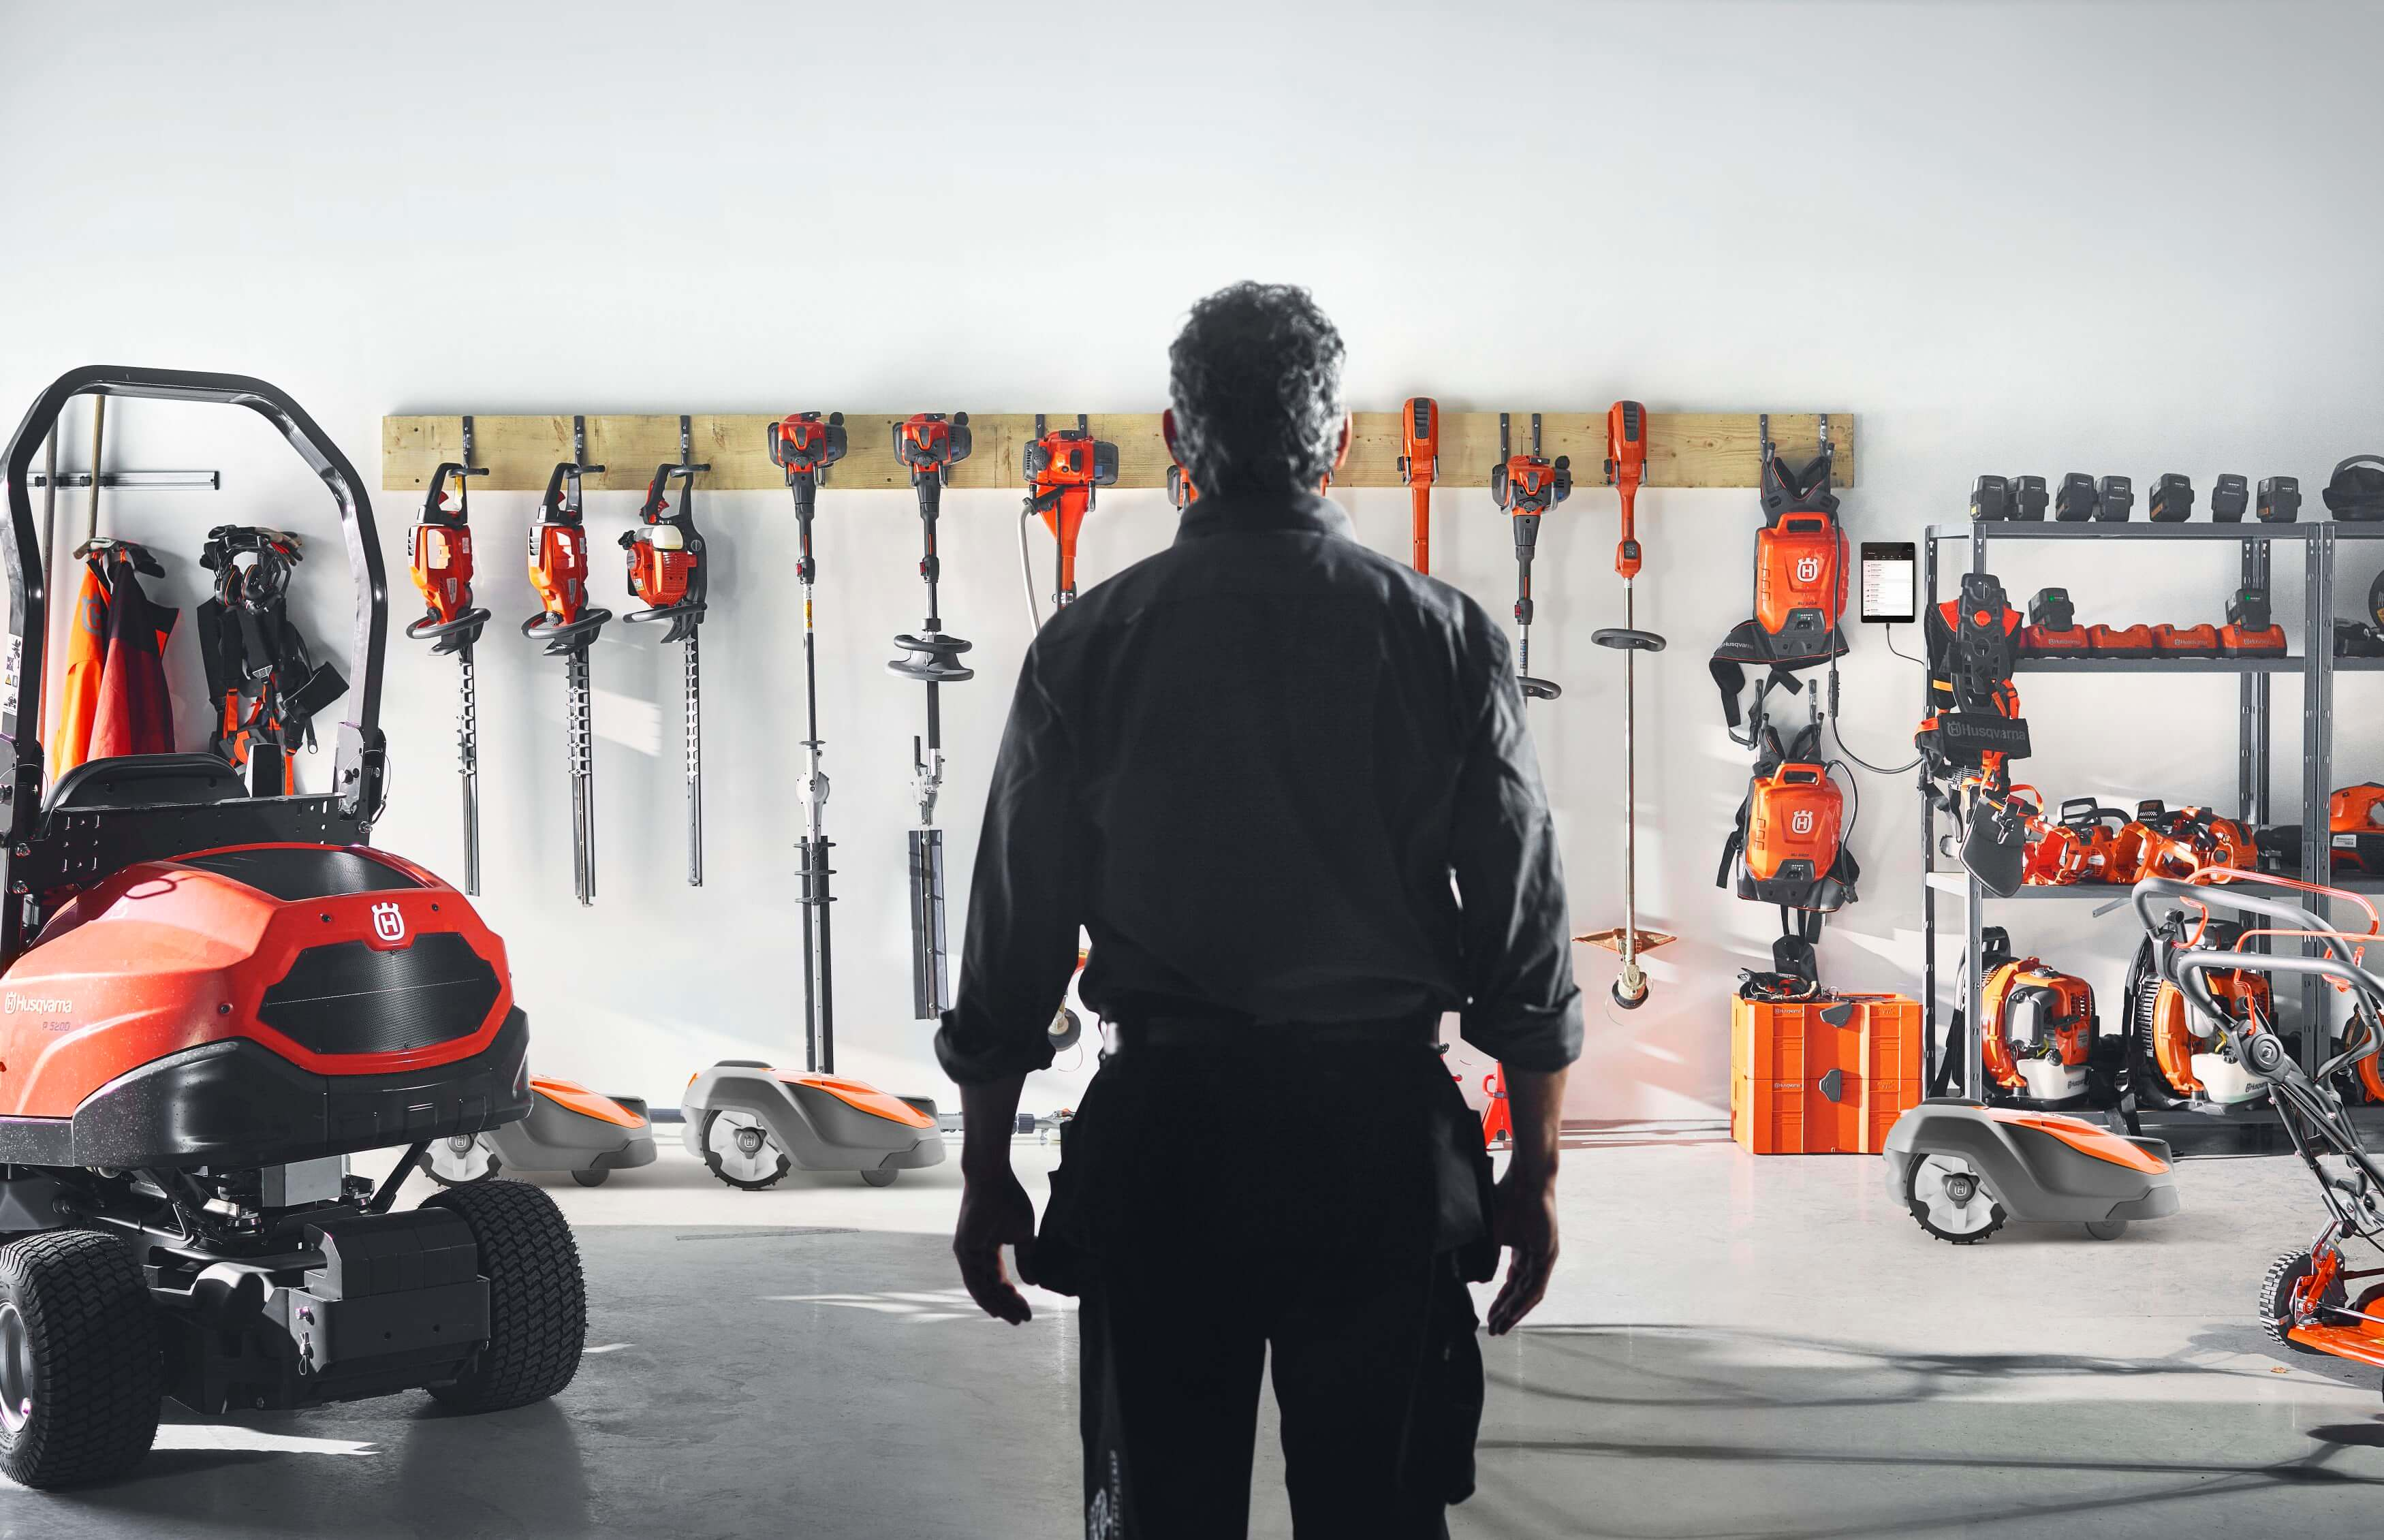 Husqvarna product wall with tools, and equipment